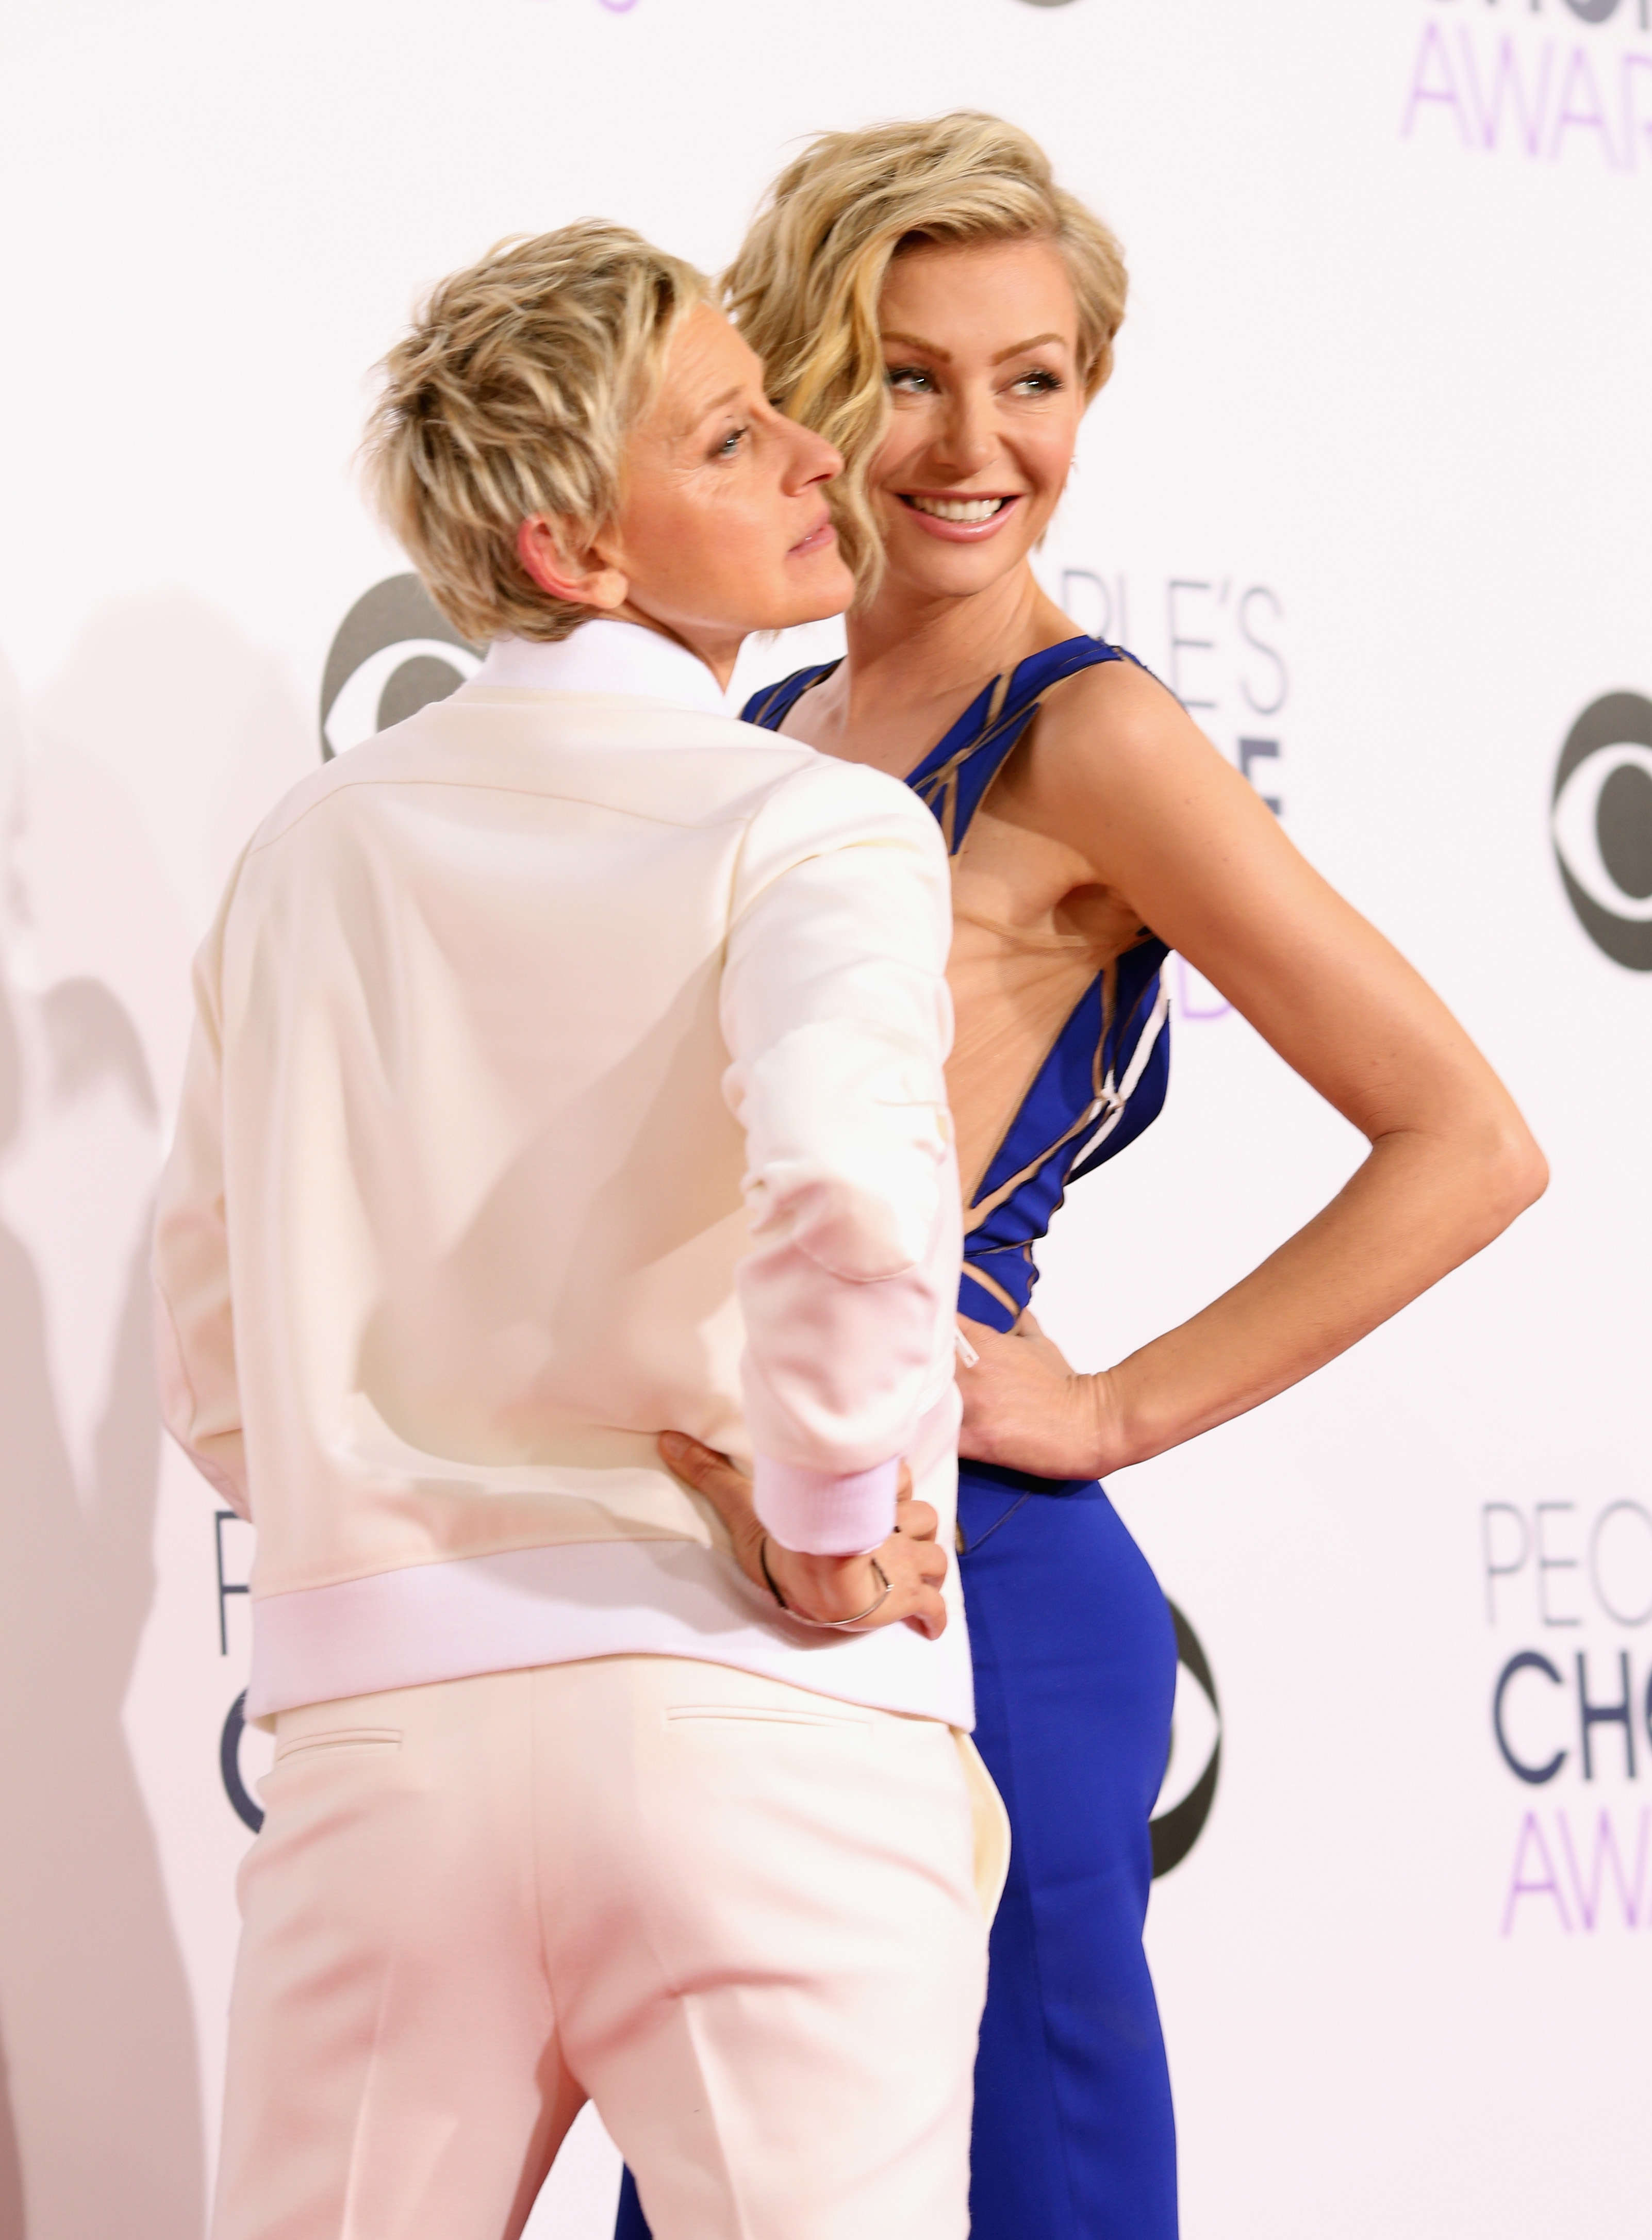 how did ellen degeneres meet portia de rossi